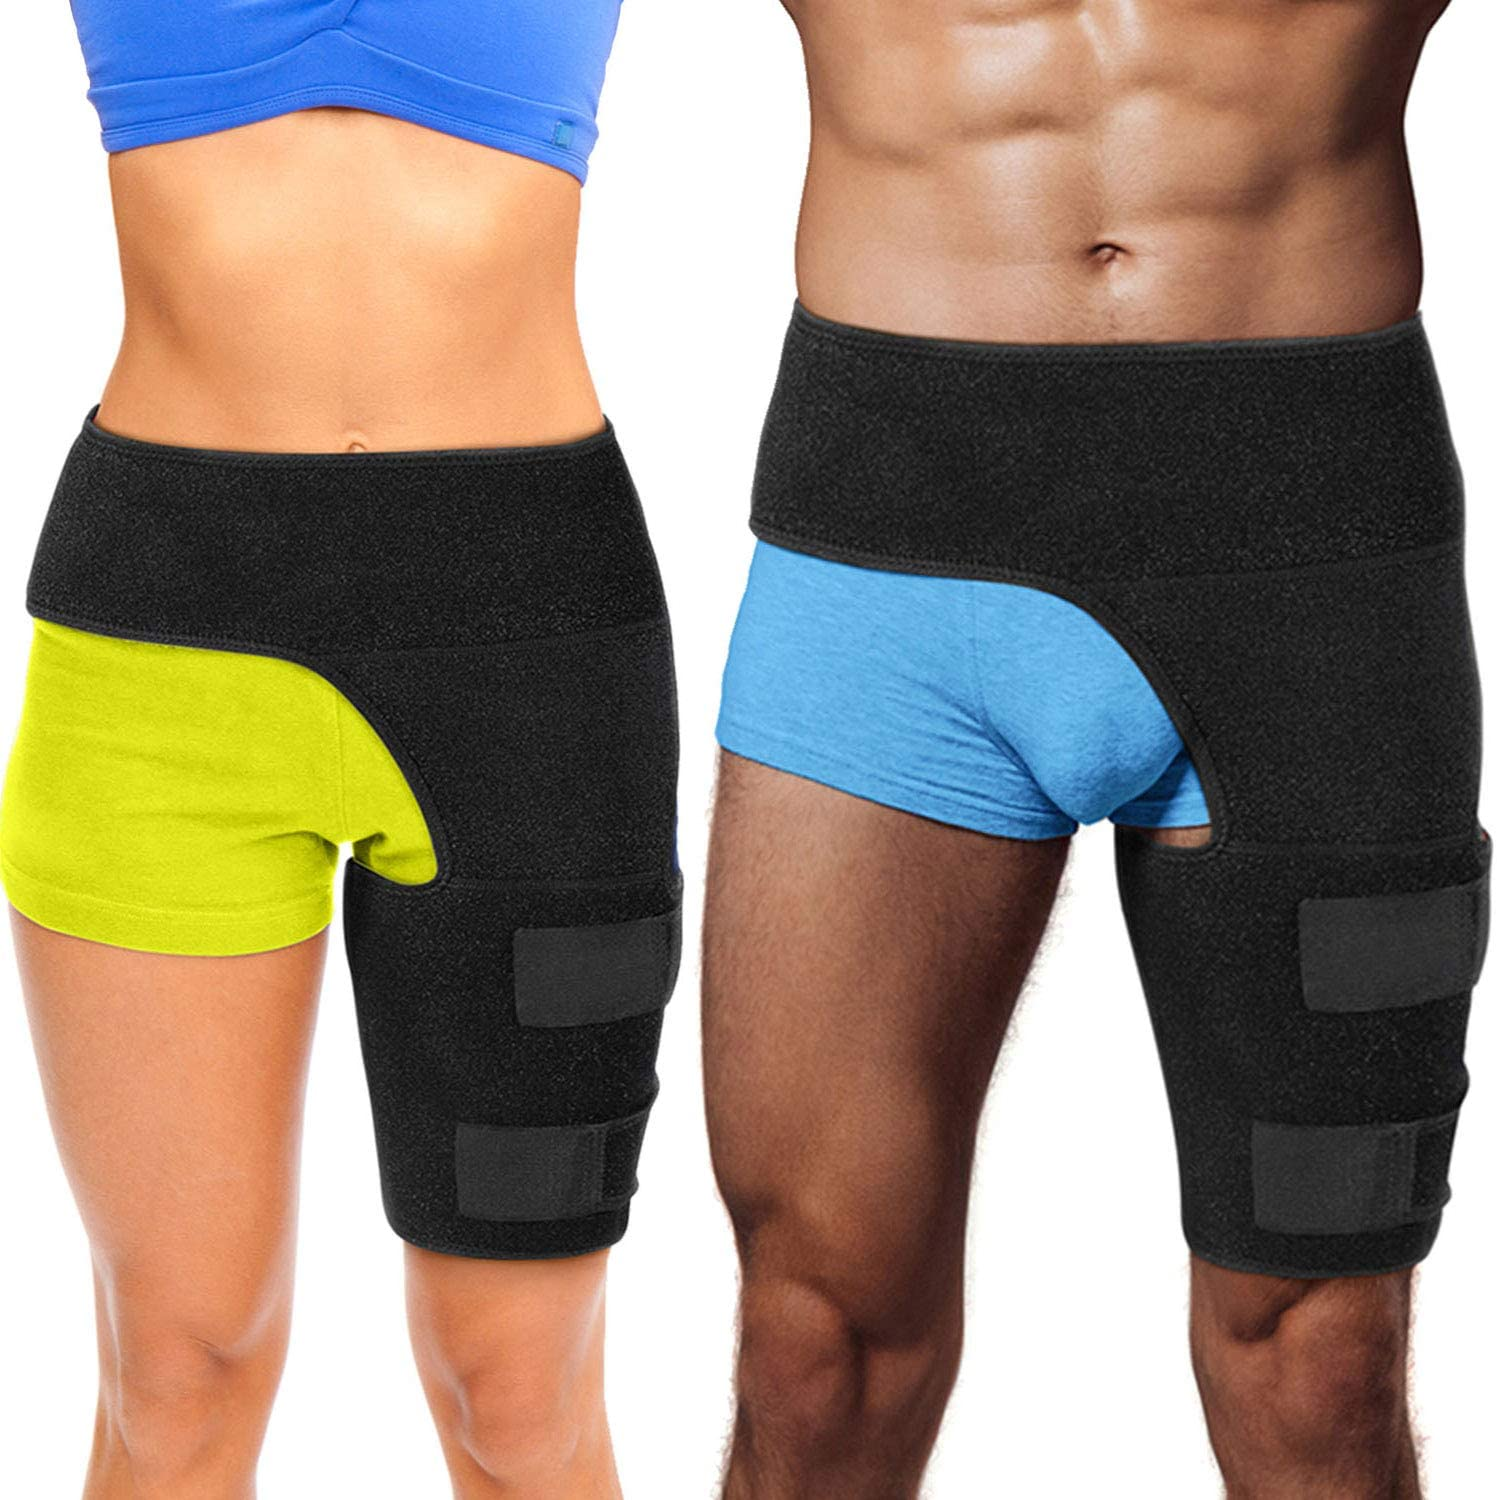 Hip Brace Thigh Compression Sleeve – Hamstring Compression Sleeve & Groin Compression Wrap for Hip Pain Relief. Support for Hip Replacements, Sciatica, Quad Muscle Strains Fits Both Legs (SM/Left): Industrial & Scientific